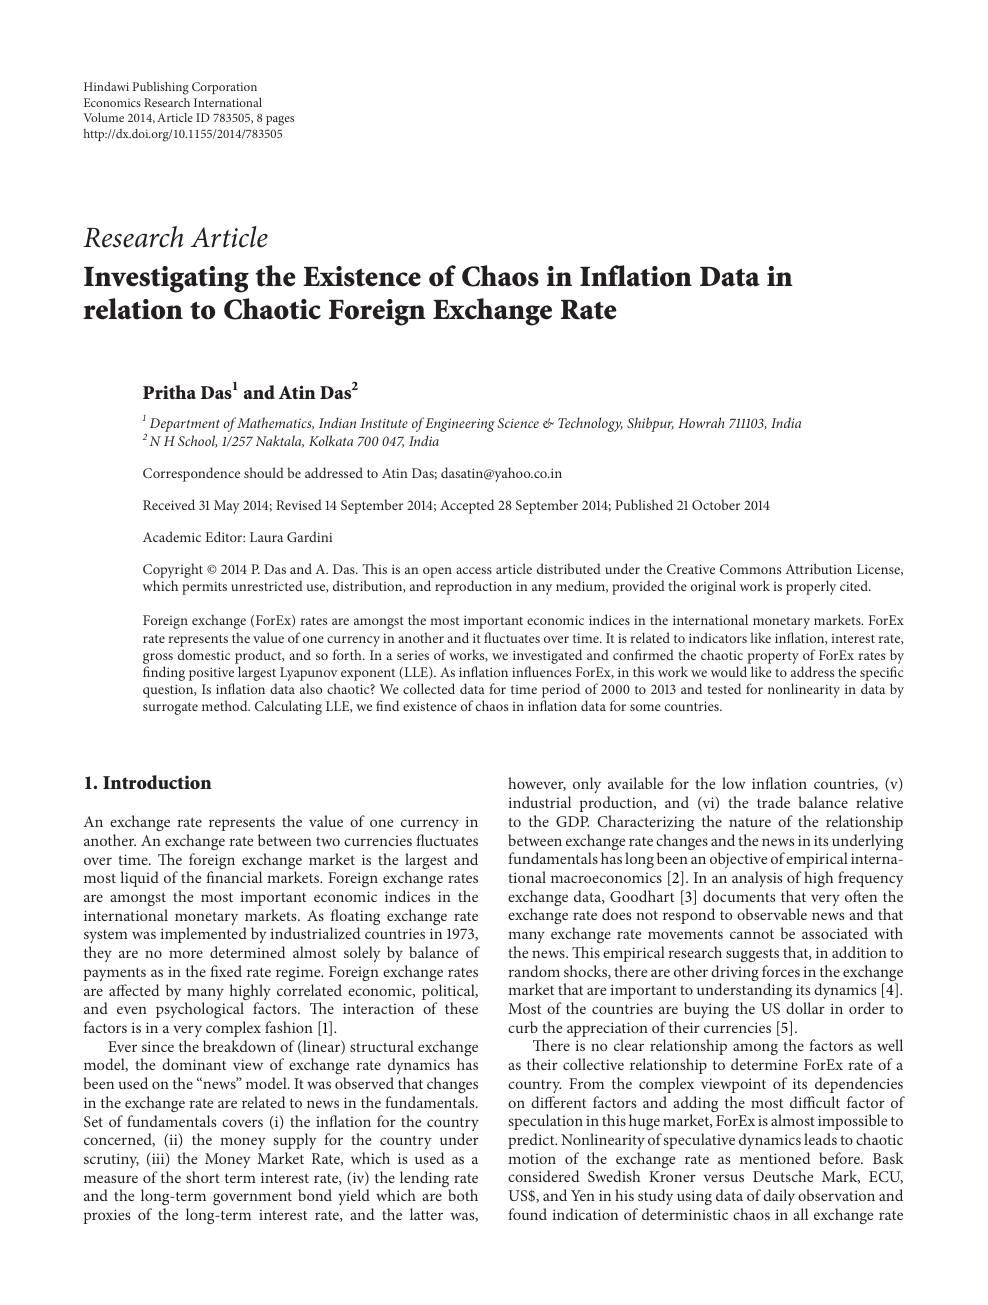 Investigating the Existence of Chaos in Inflation Data in